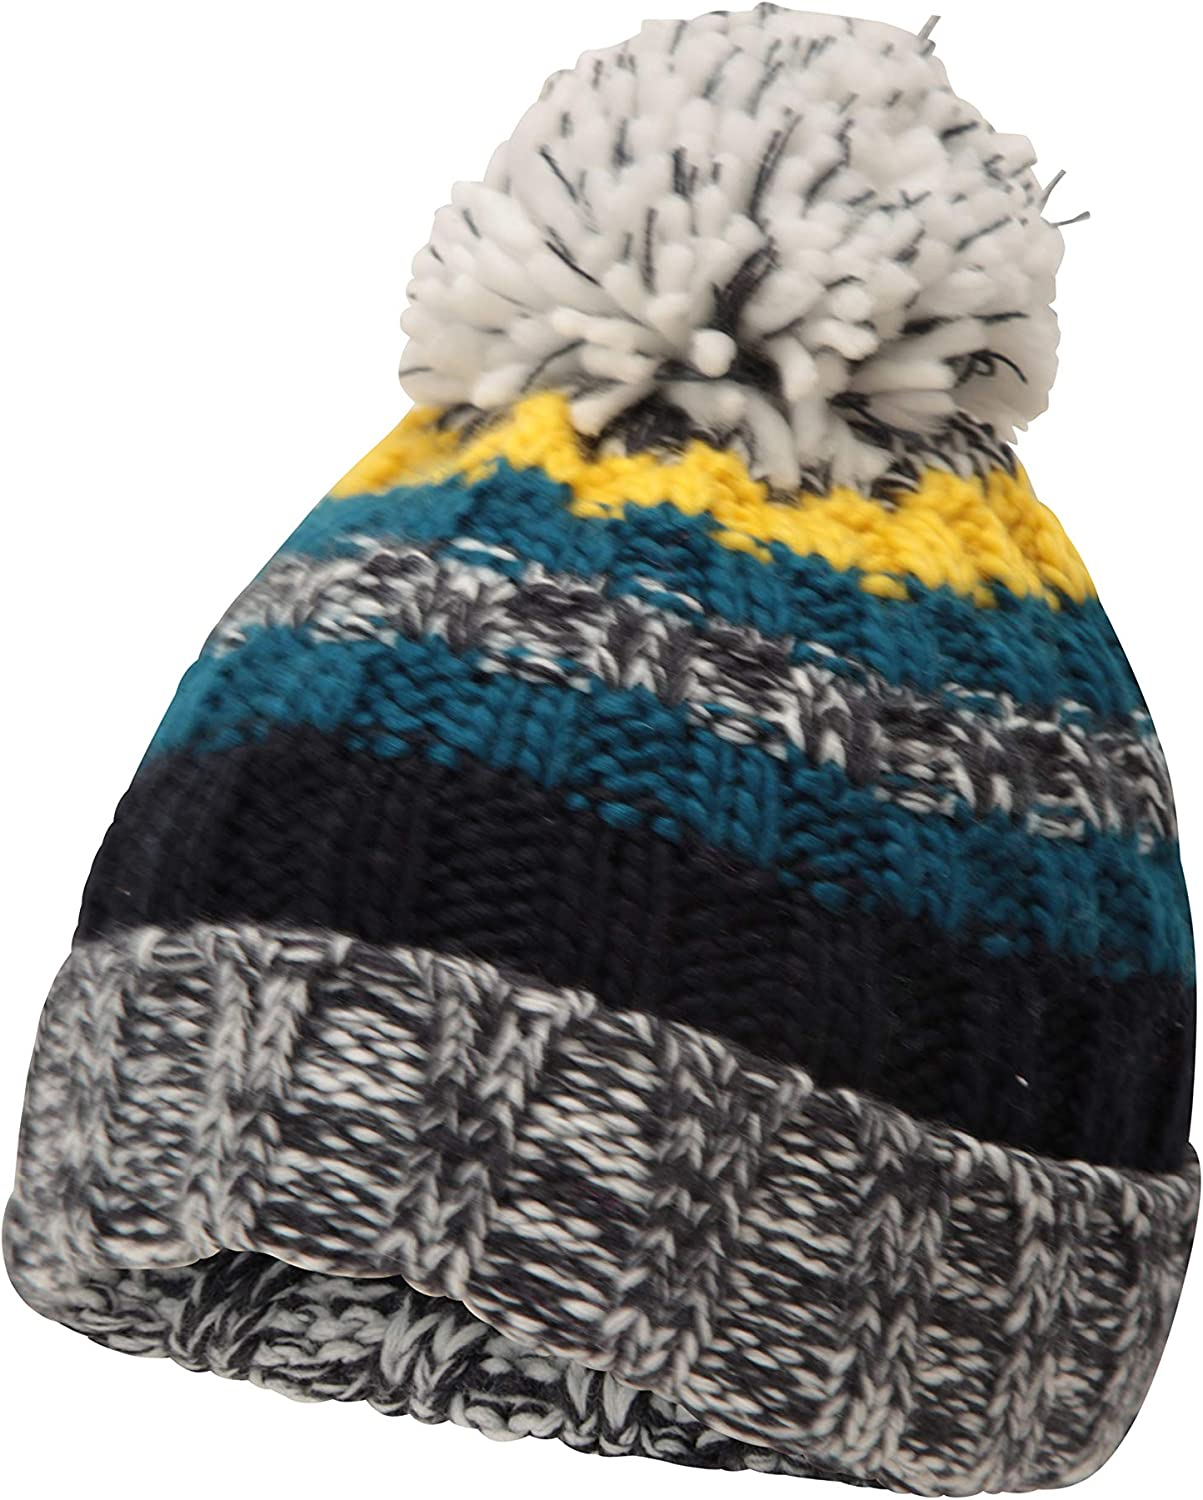 Outdoors Travelling Best for Winter Mountain Warehouse Chunky Knit Kids Beanie Warm /& Cosy Lightweight Girls /& Boys Winter Hat Fluffy Pom Pom Acrylic Fabric